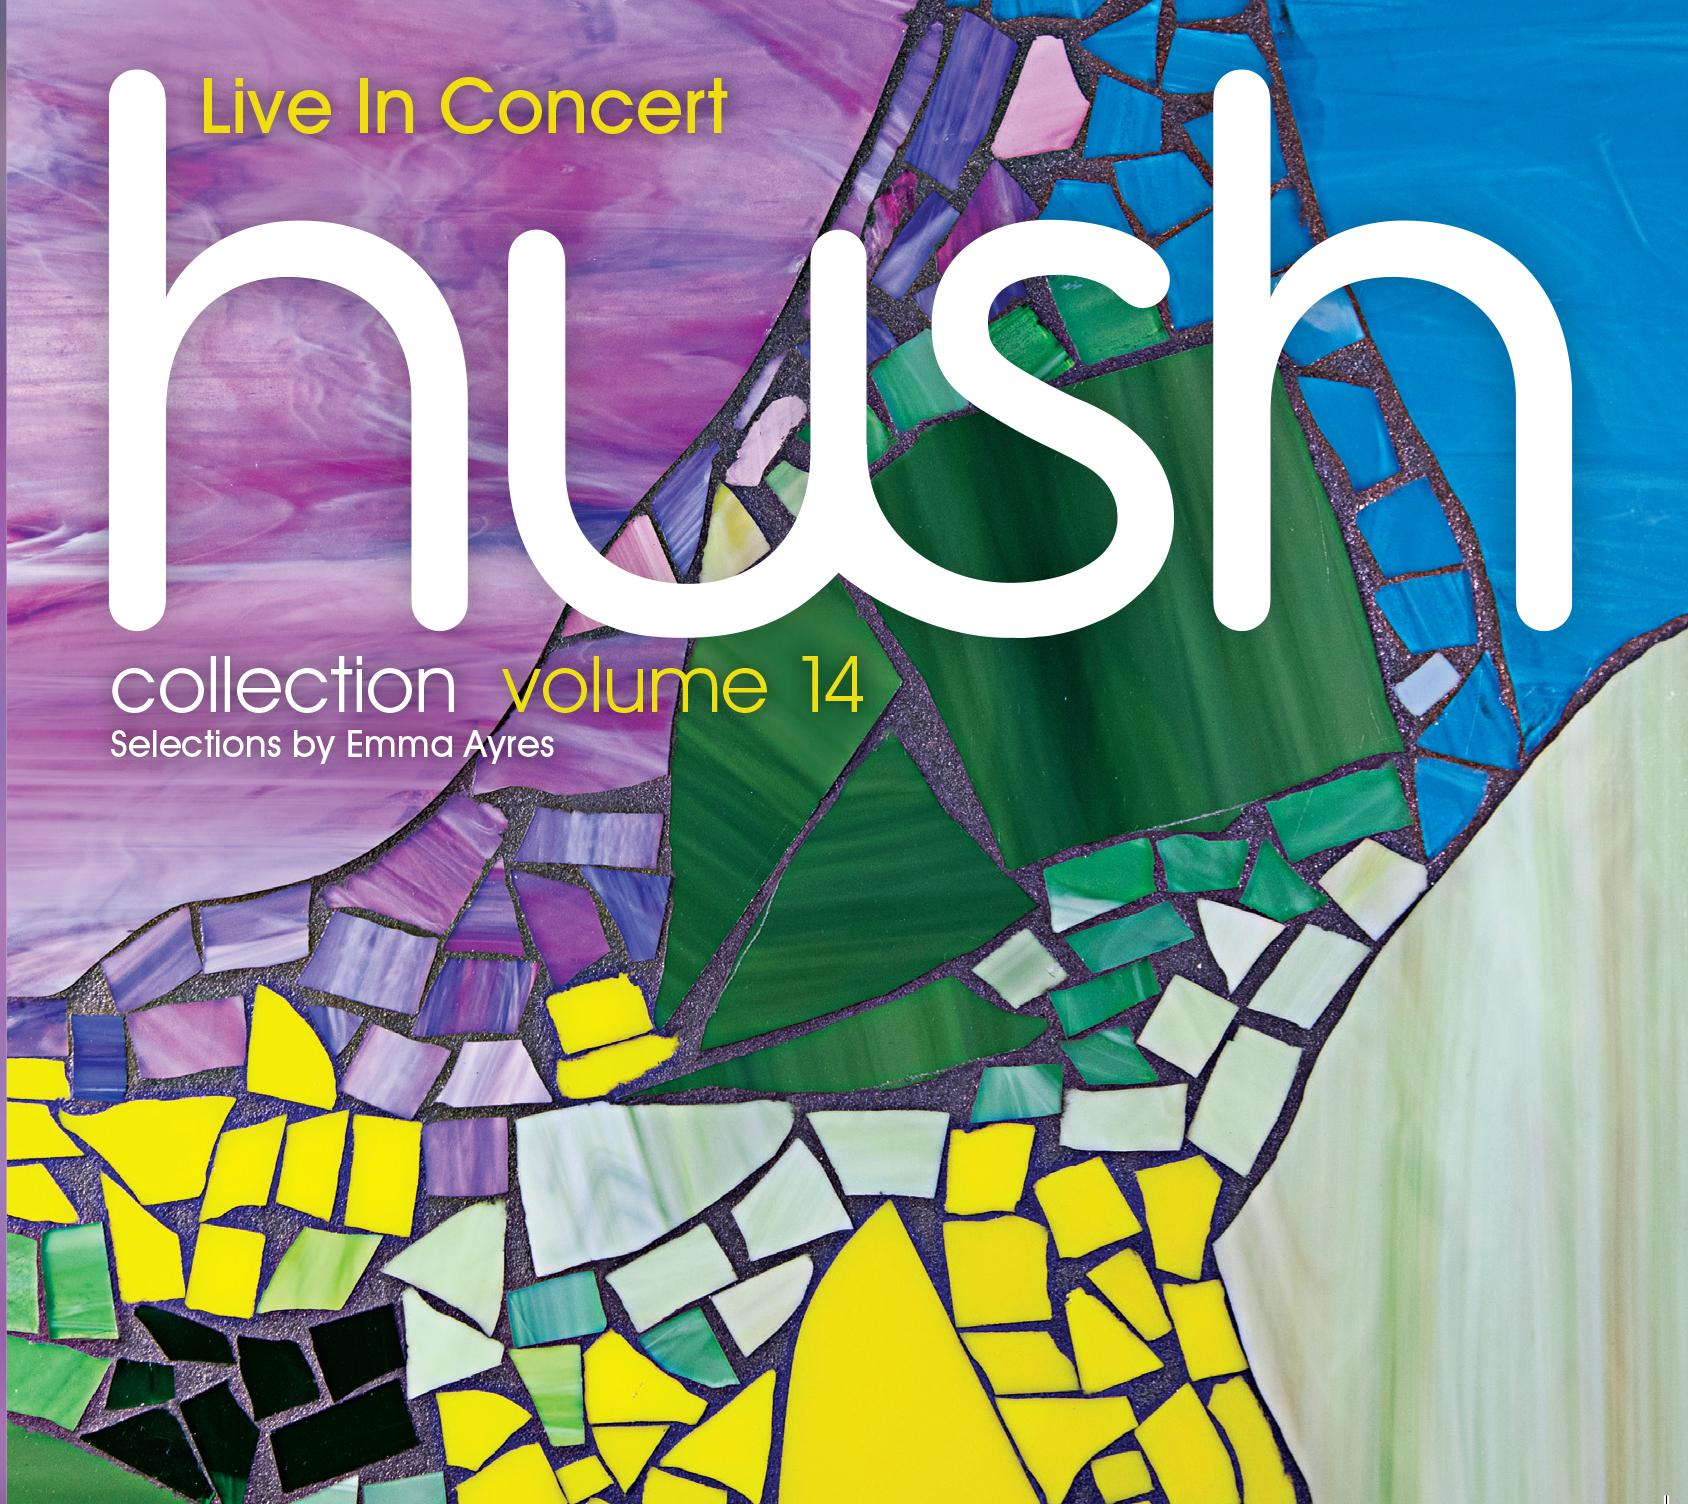 Hush Collection Volume 14